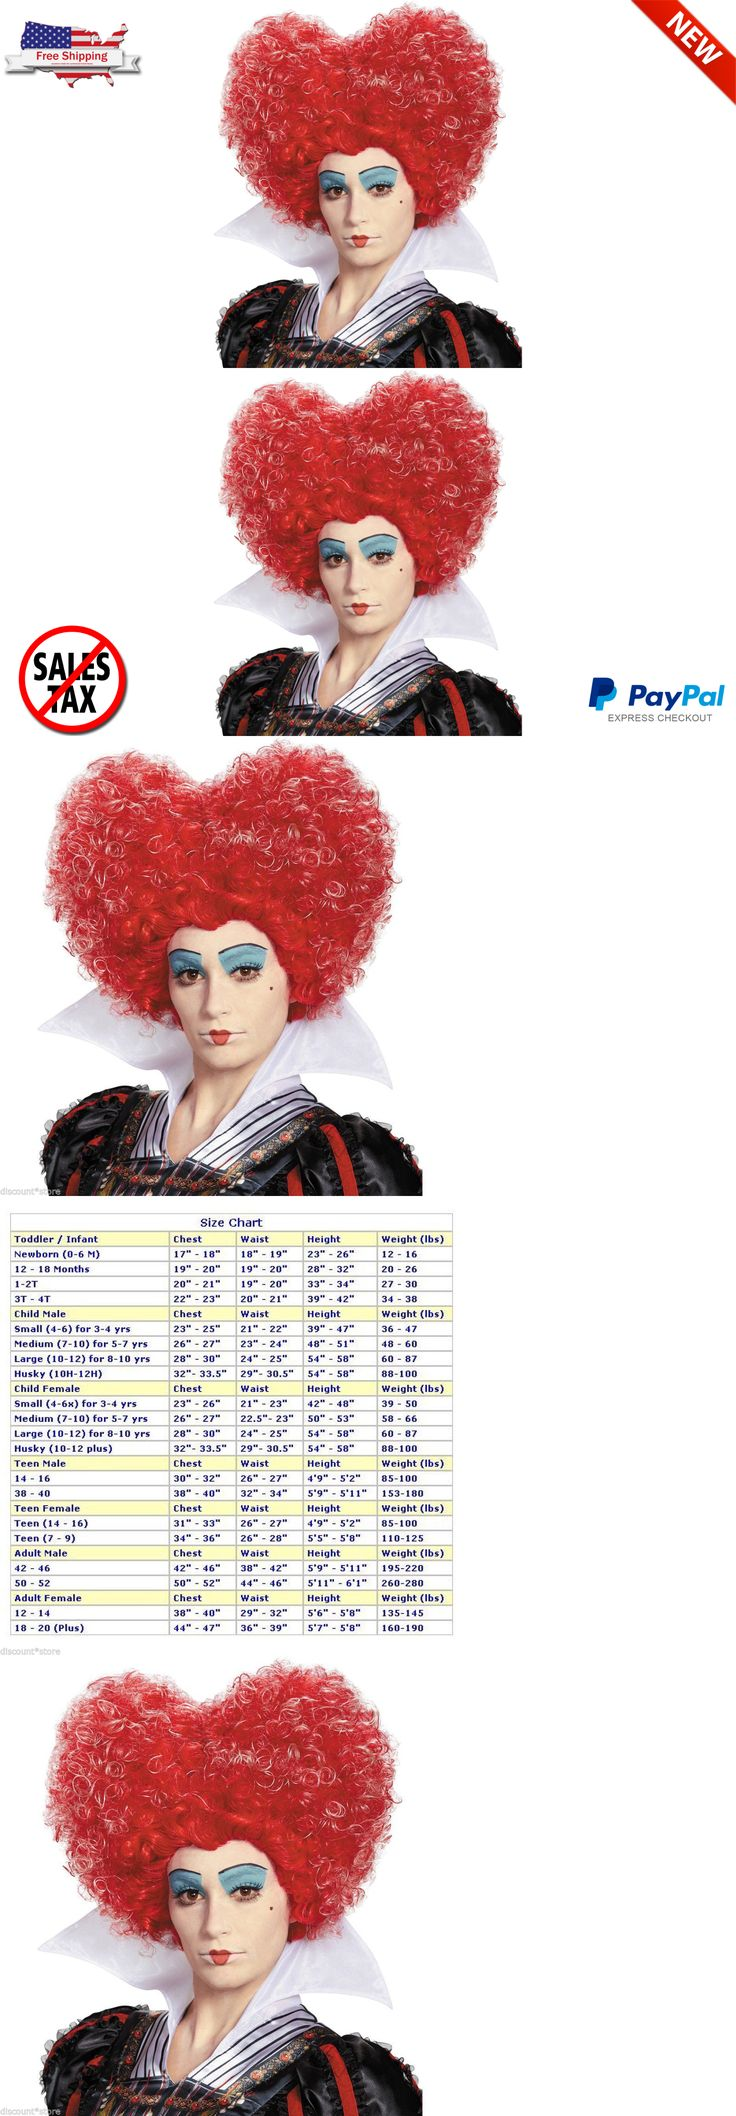 Wigs and Facial Hair 155350: Queen Of Hearts Wig Halloween Costume Accessory Hair Red Disney Alice Wonderland -> BUY IT NOW ONLY: $33.92 on eBay!